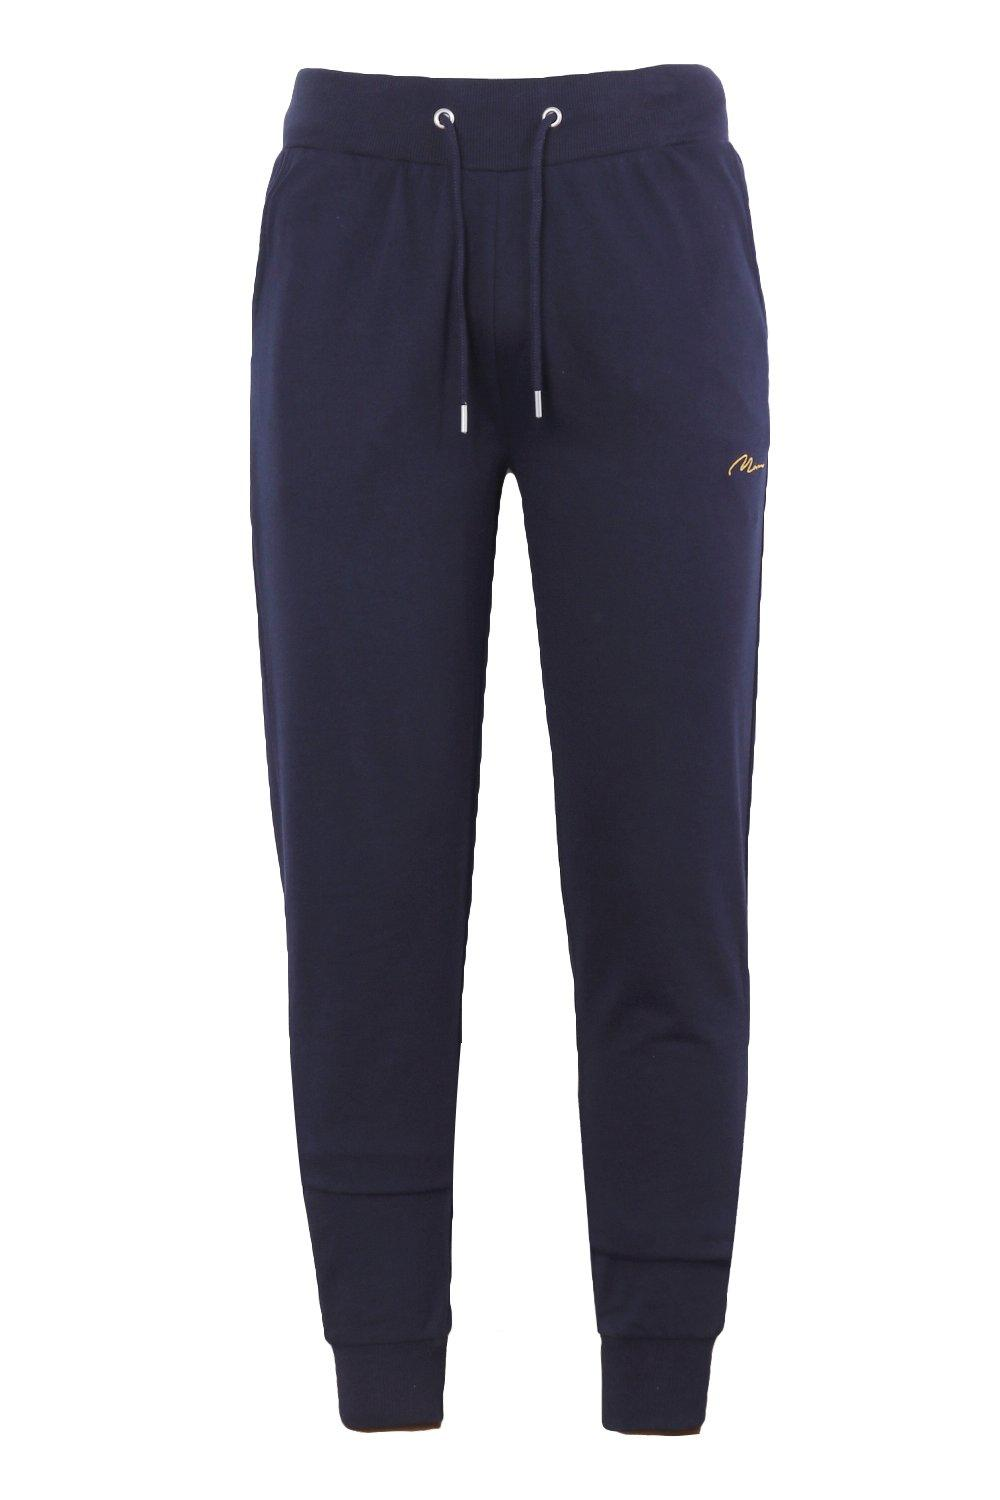 boohooMAN navy MAN Signature Skinny Fit Jogger